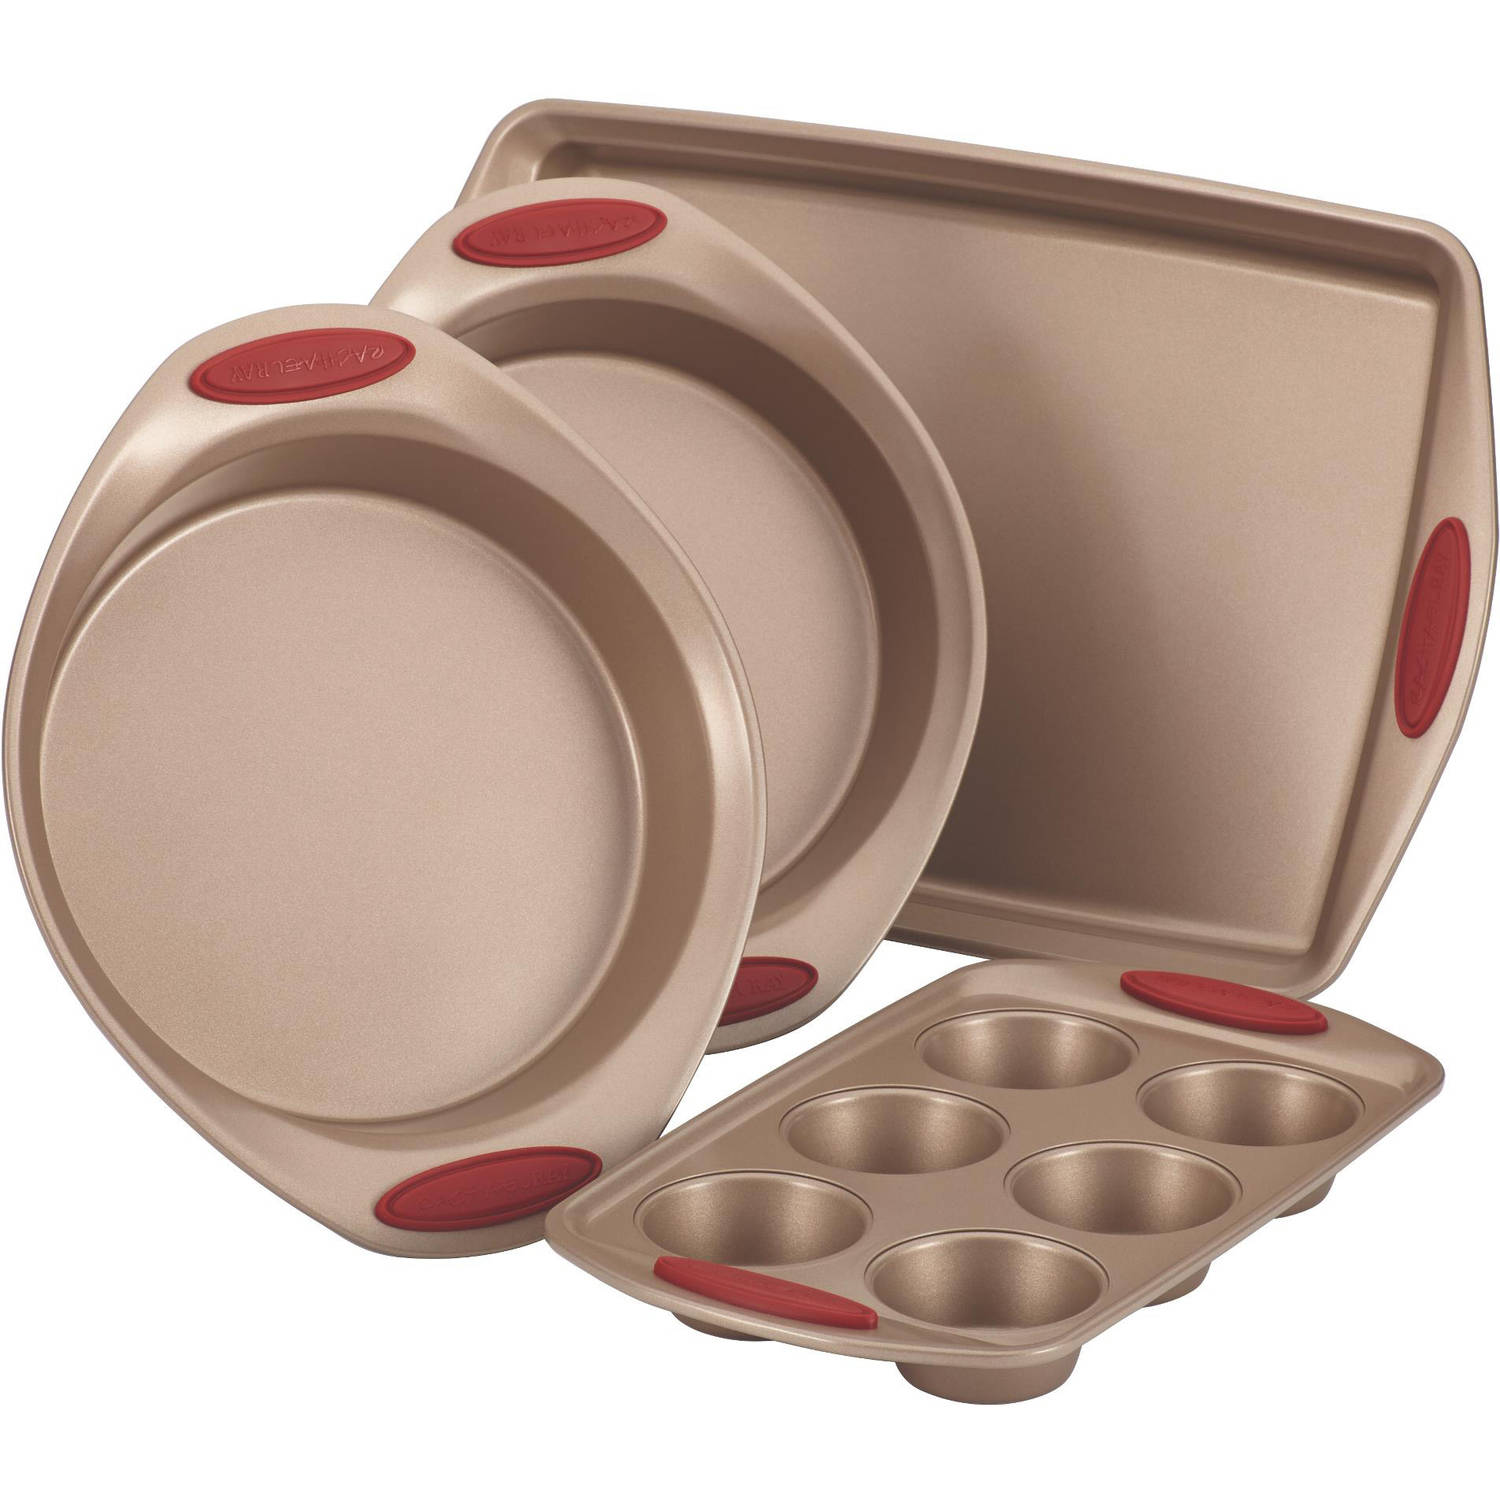 Rachael Ray Cucina Nonstick Bakeware 4-Piece Set, Latte Brown